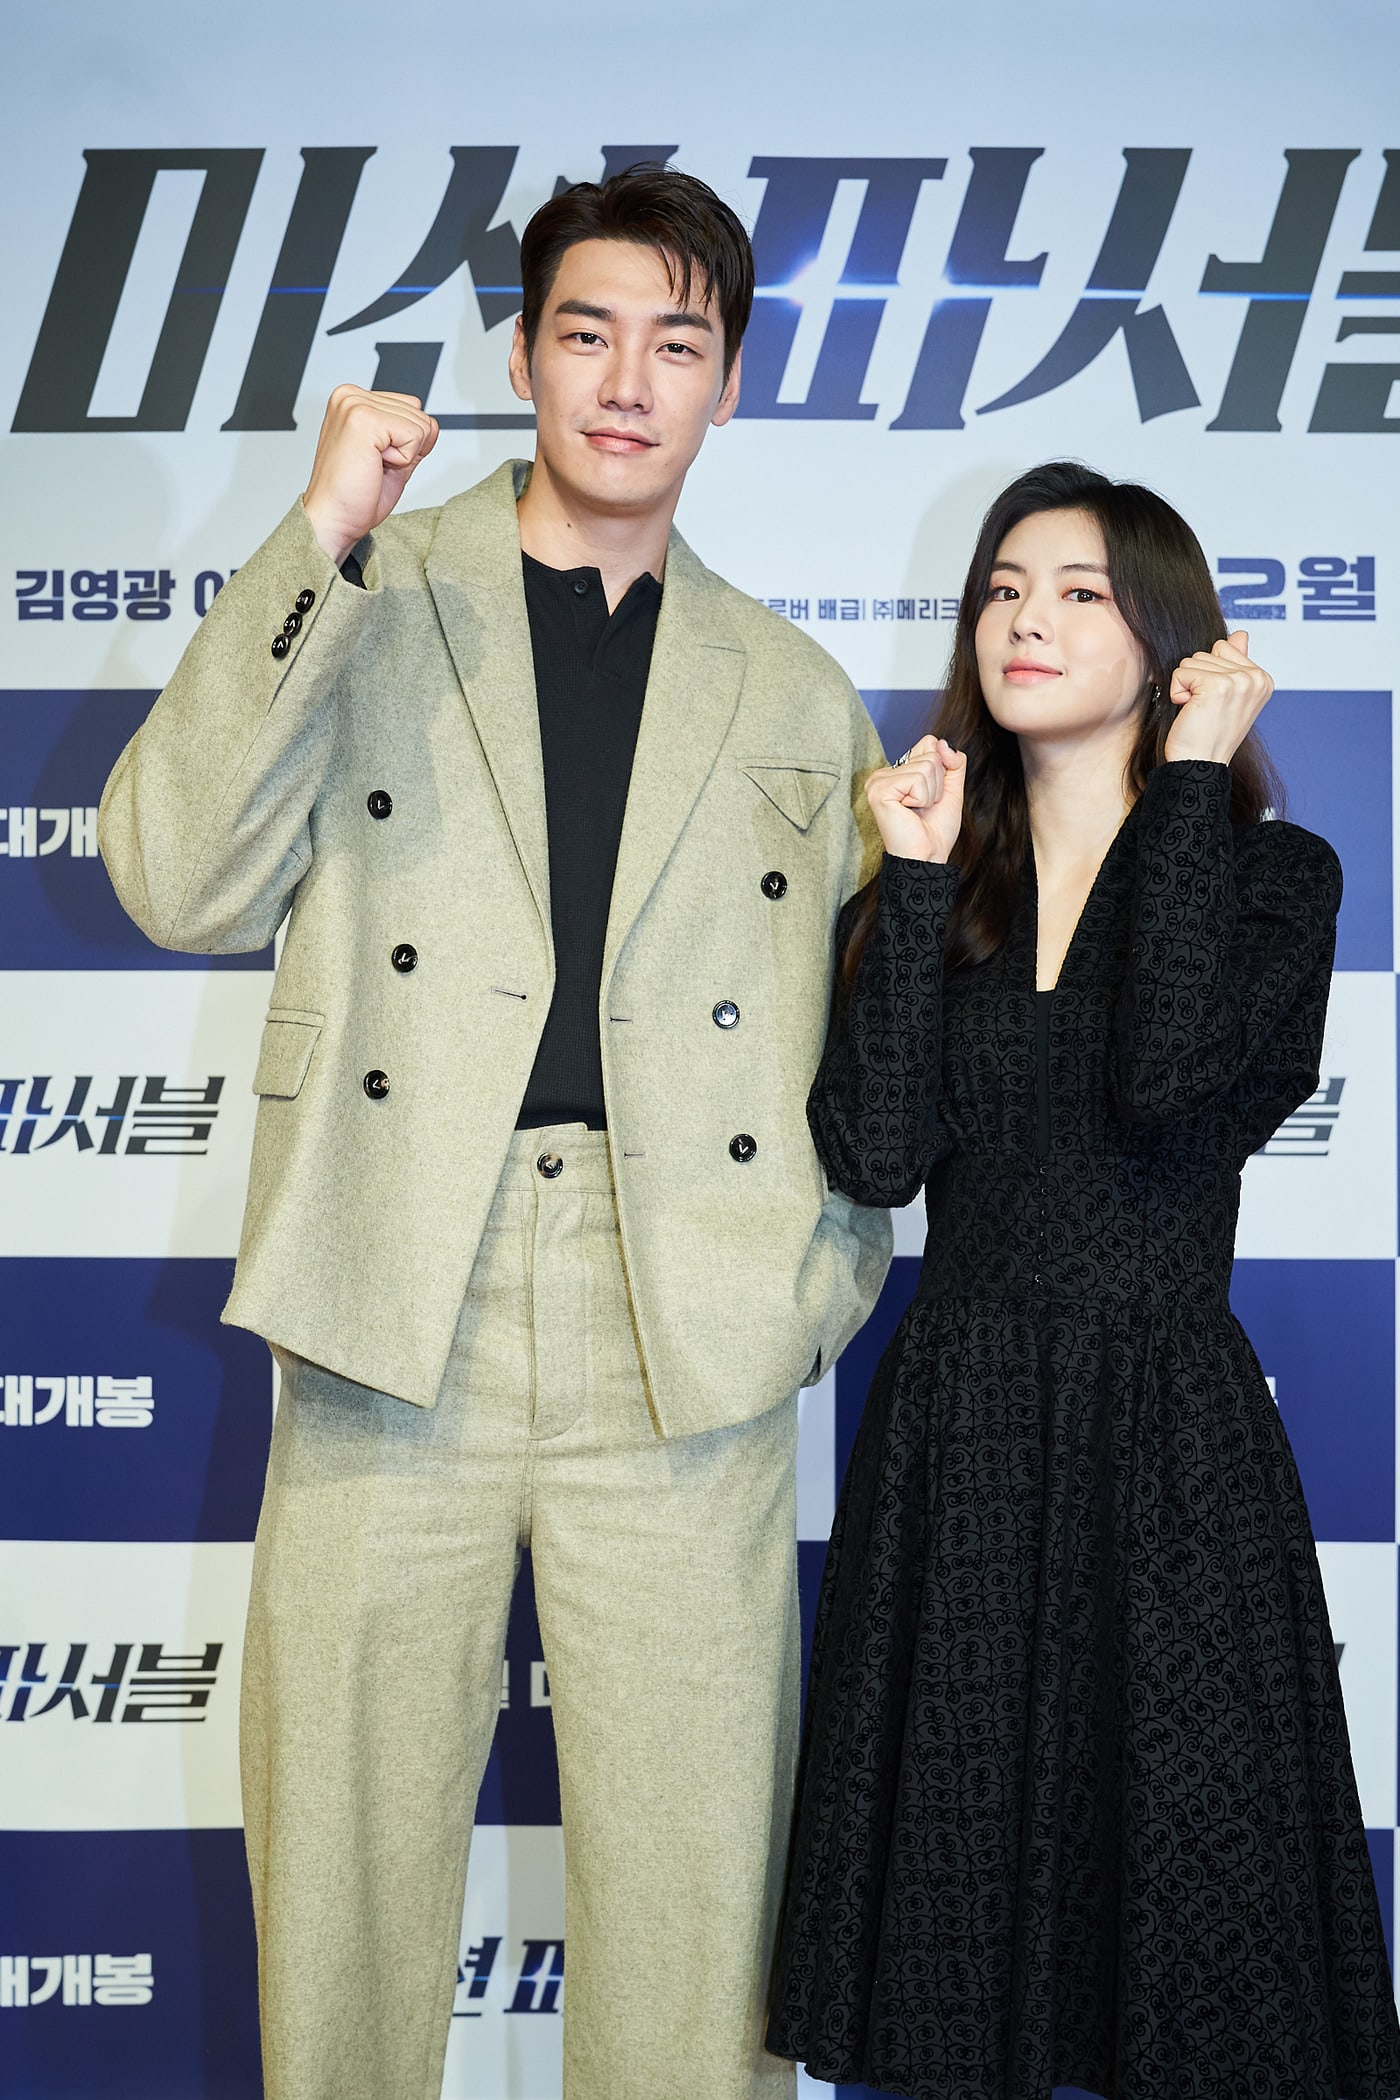 """""""Mission Possible"""": Kim Young Kwang and Lee Sun Bin talk about the mix of action and comedy in the upcoming film"""